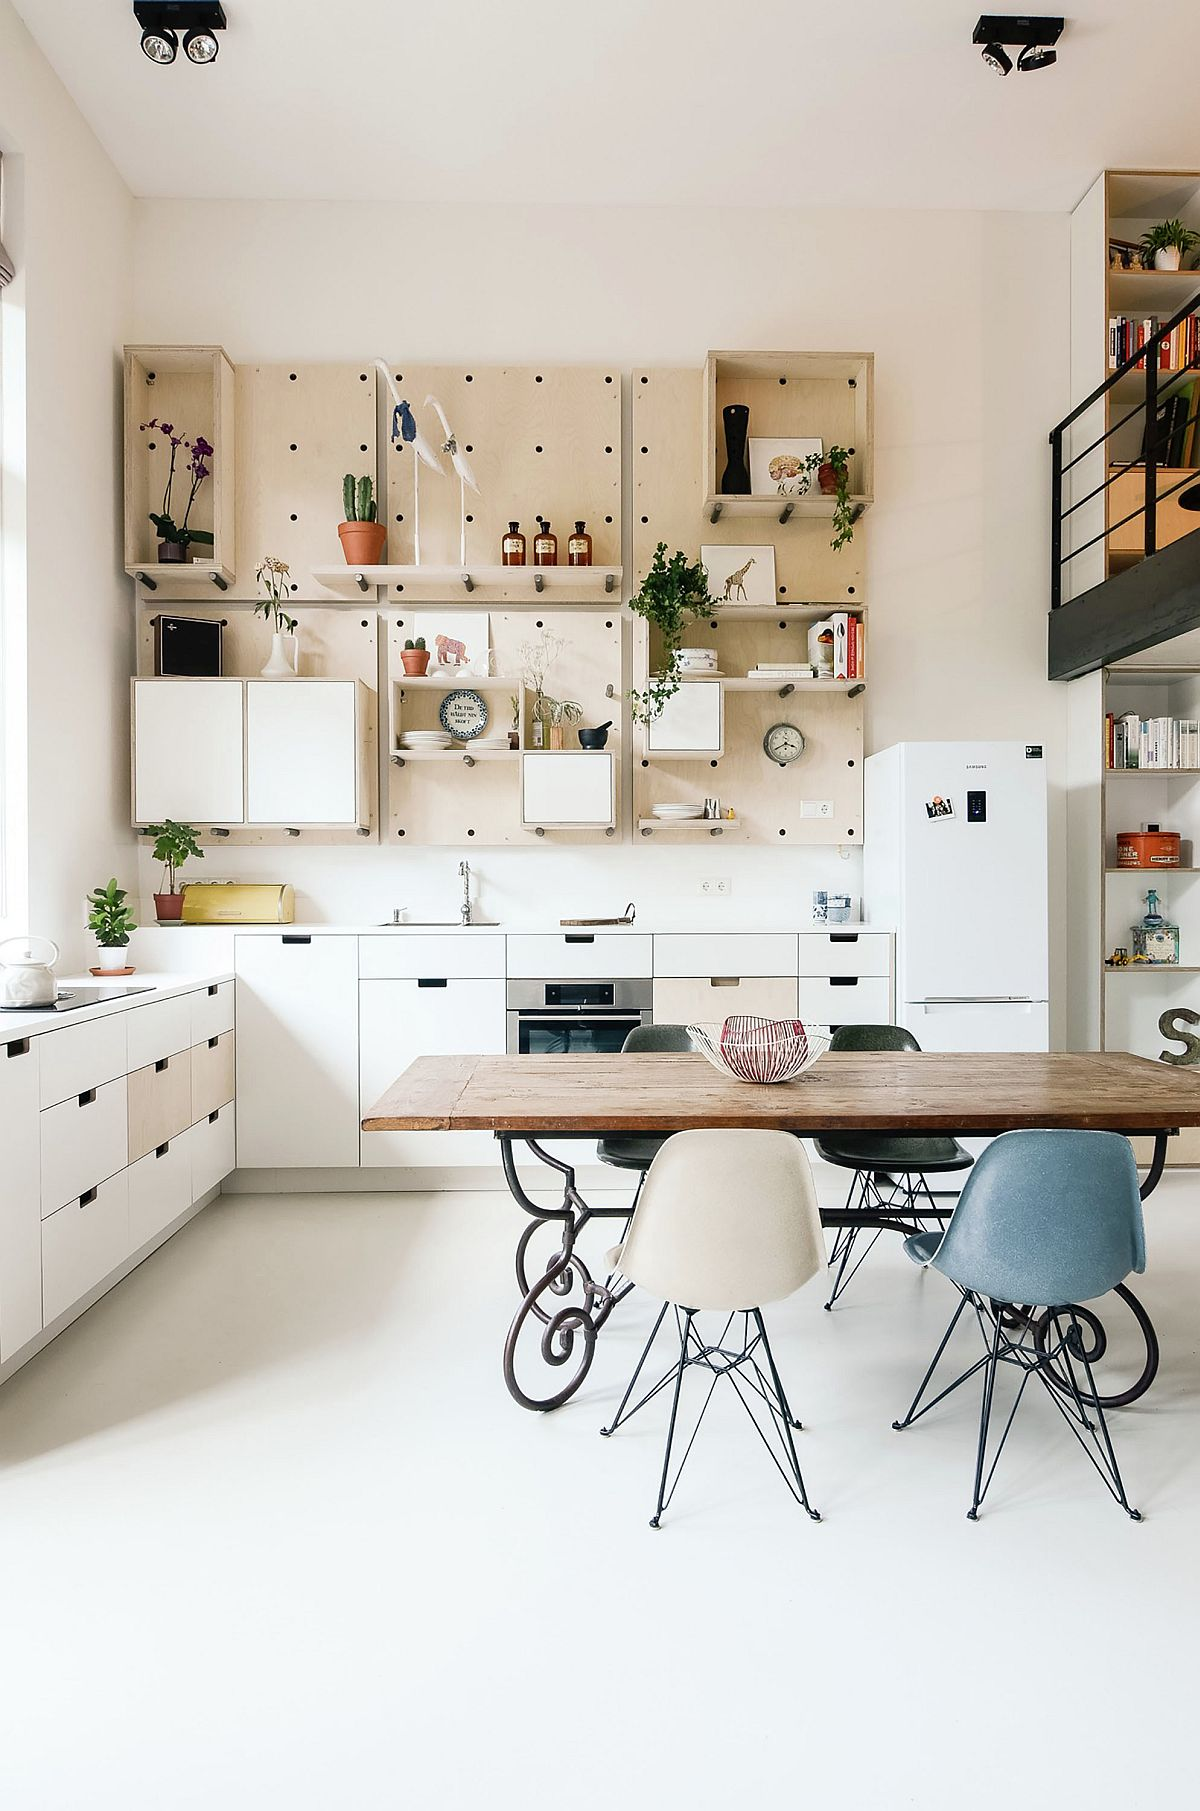 Flexible and smart pegboard storage system in the kitchen